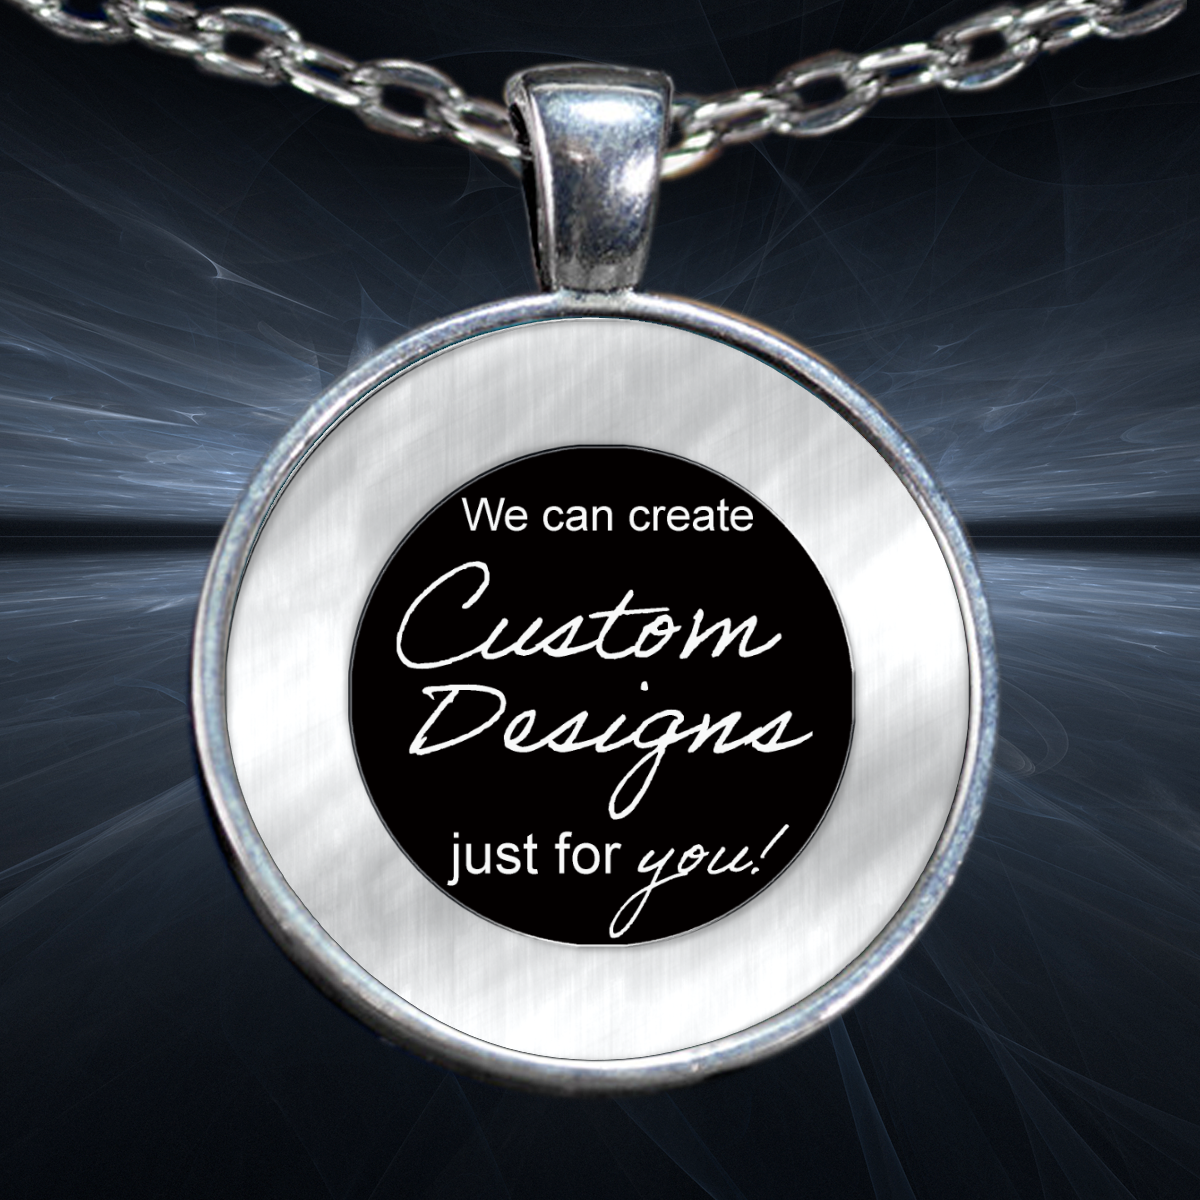 One Inch Circle Pendant and Bracelet - Design Service Only